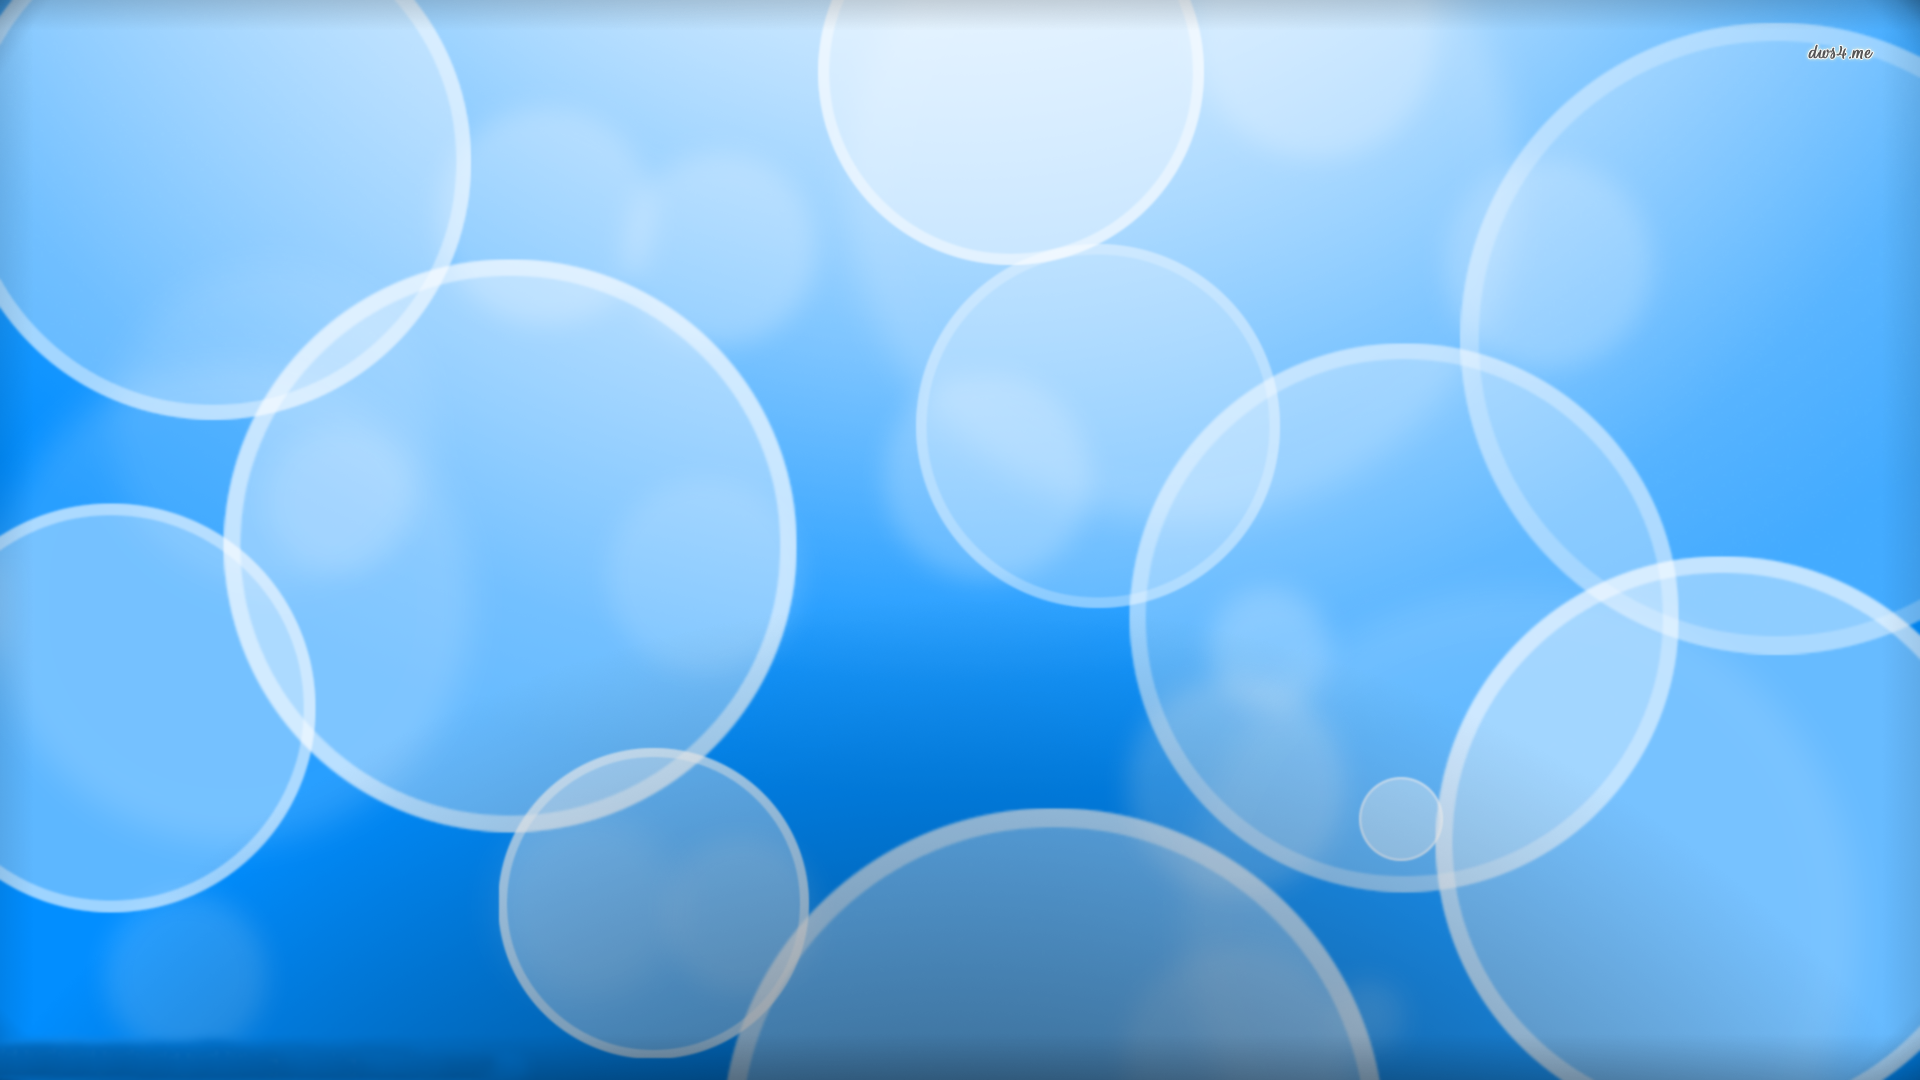 Blue Bubbles wallpaper - Abstract wallpapers - #